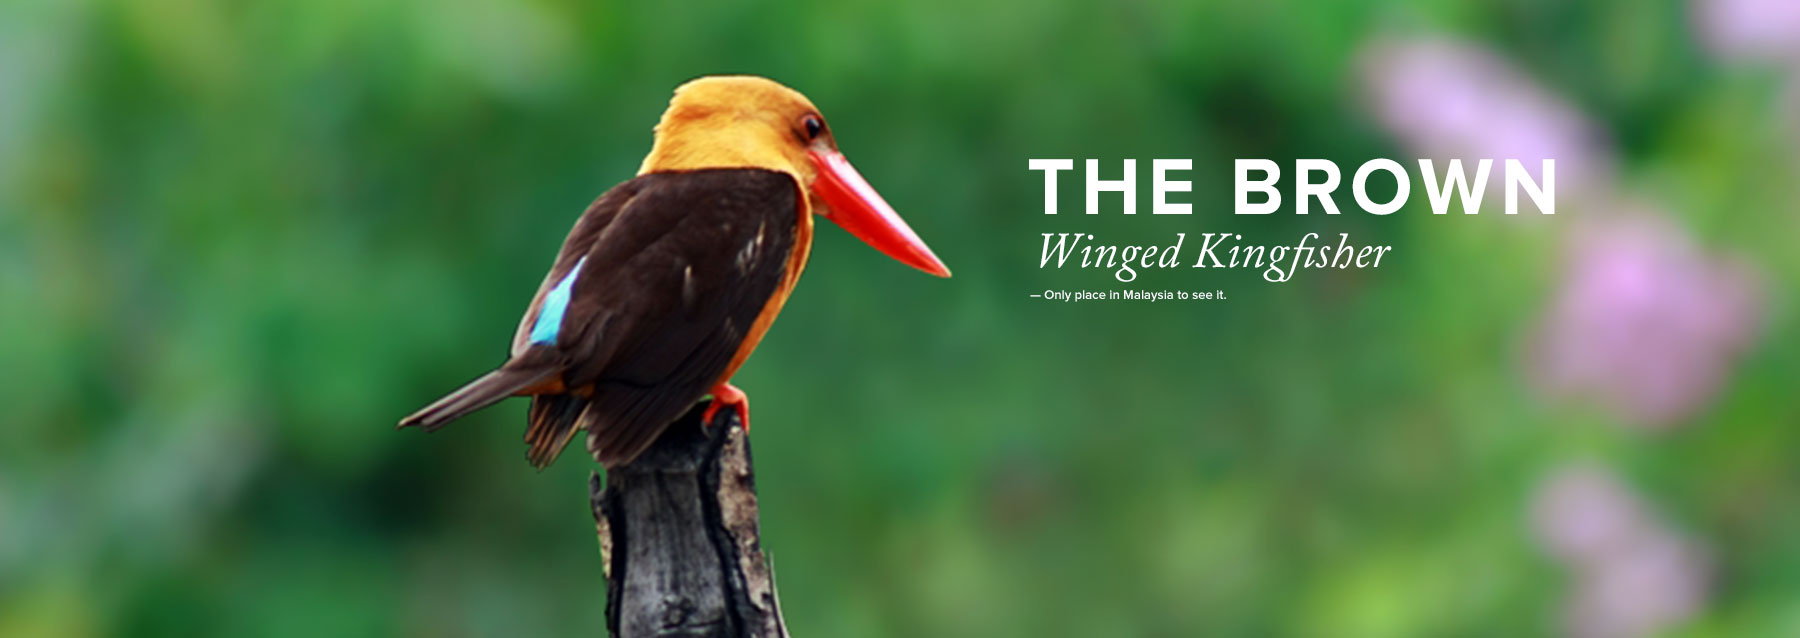 Winged Kingfisher